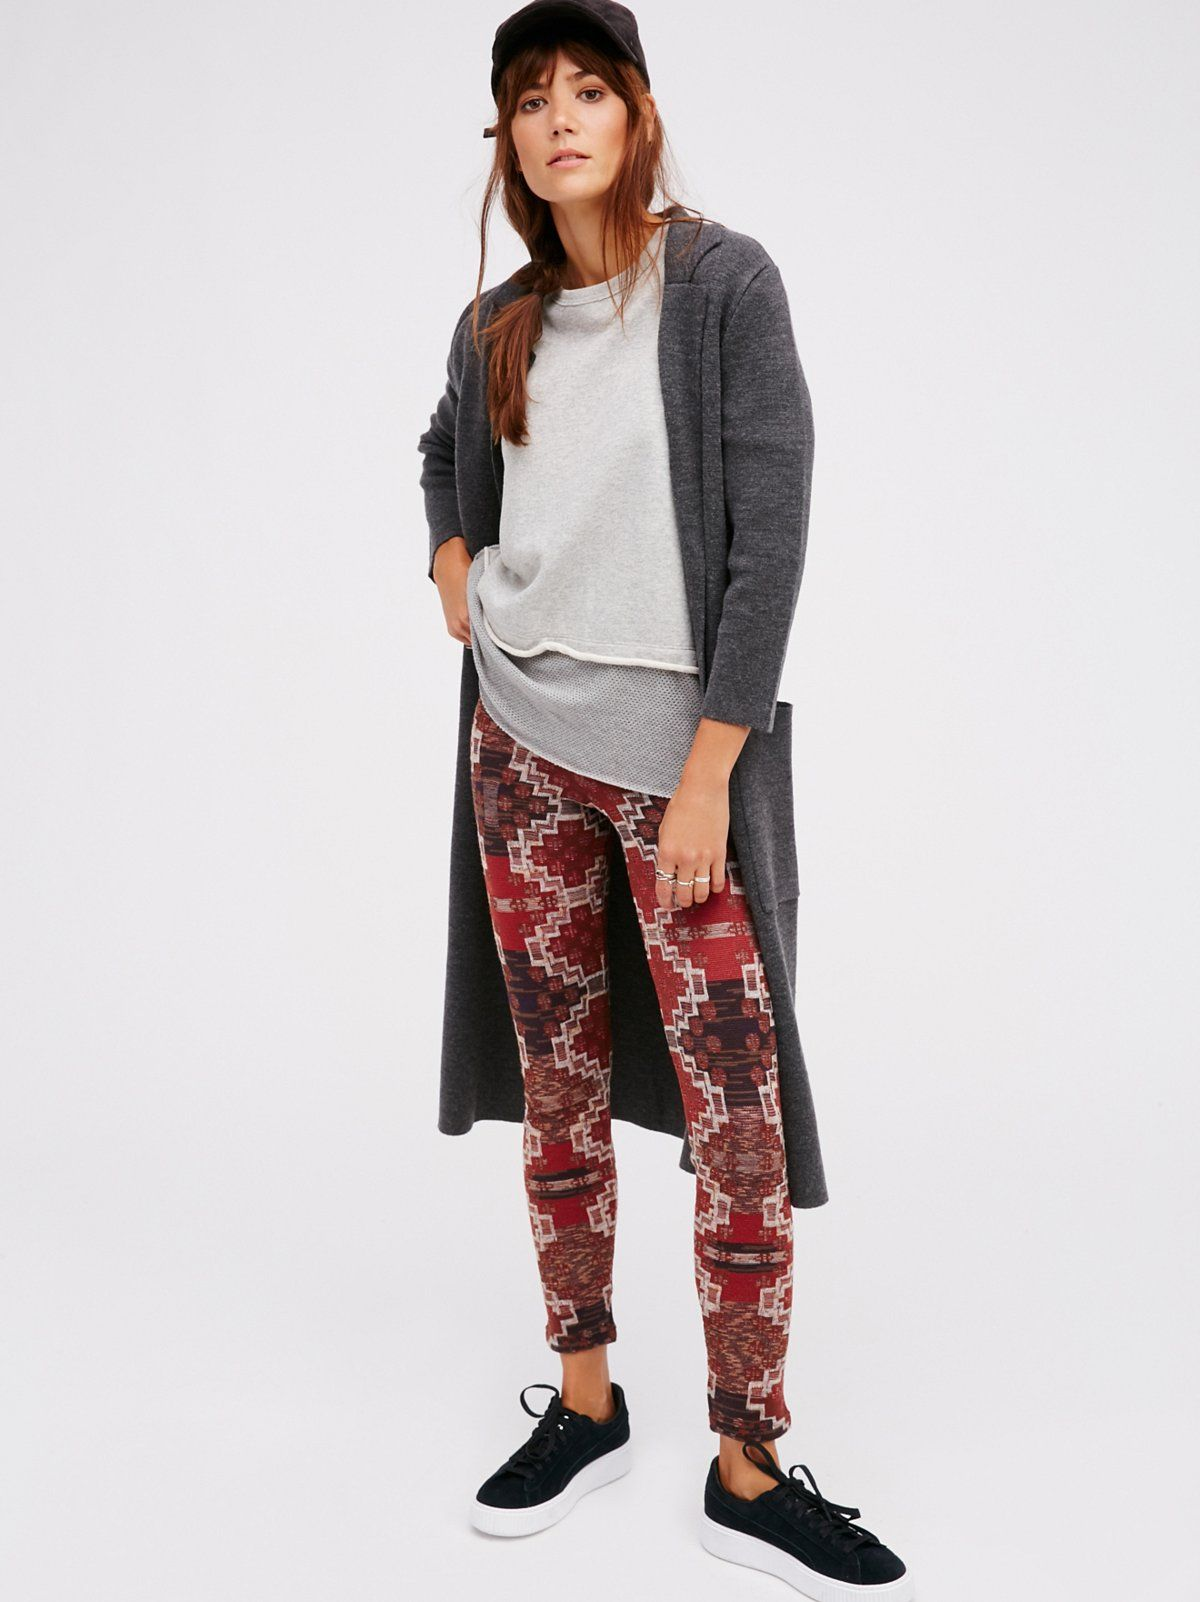 Sheila Márquez || FP Byzantine High-Rise Heavyweight Printed Sweater Legging (Terracotta Combo)